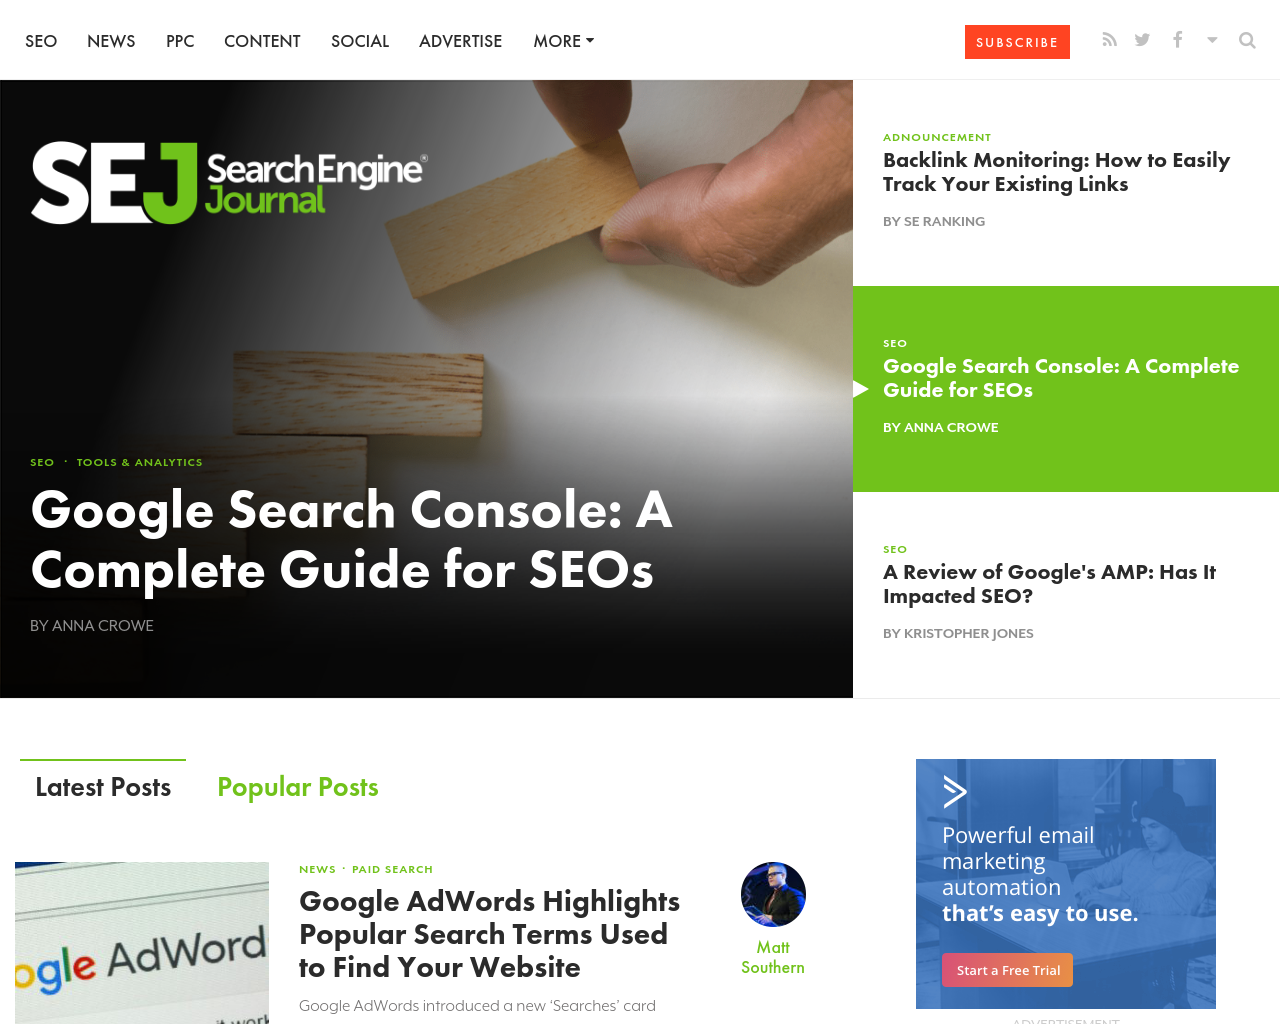 Search-Engine-Journal-Advertising-Reviews-Pricing